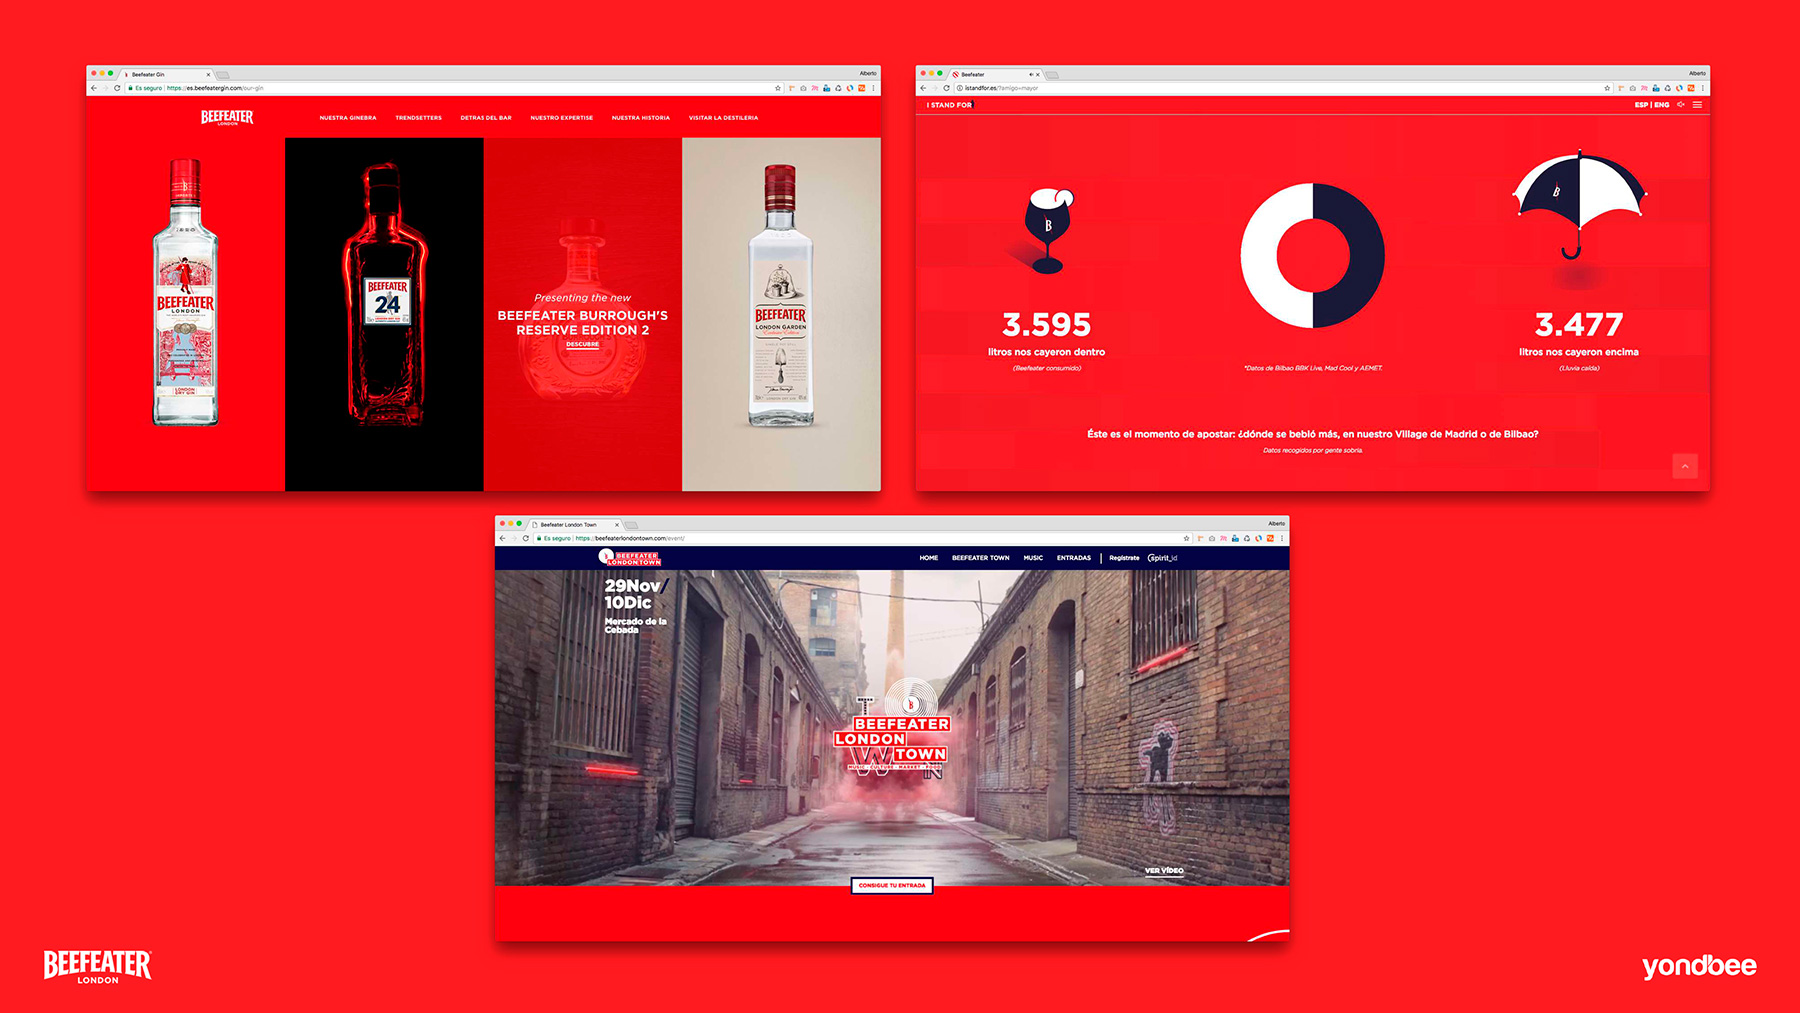 Beefeater_VF_page-0005